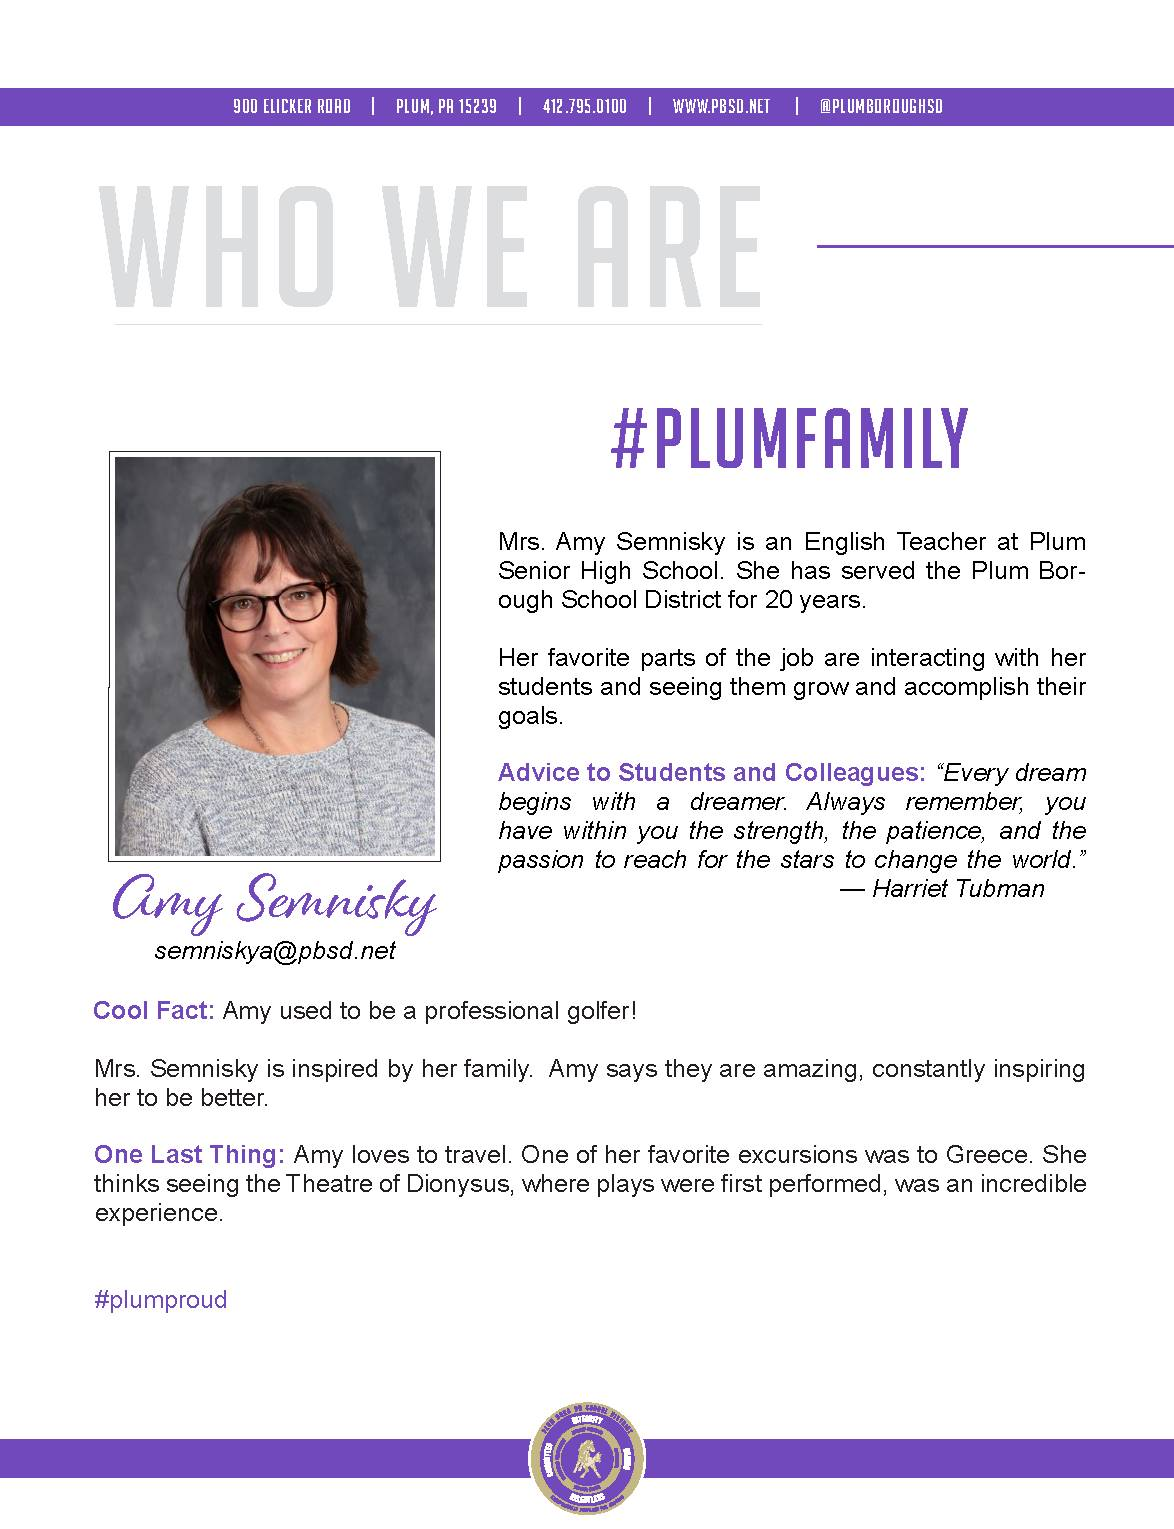 Who We Are Wednesday features Amy Semnisky.